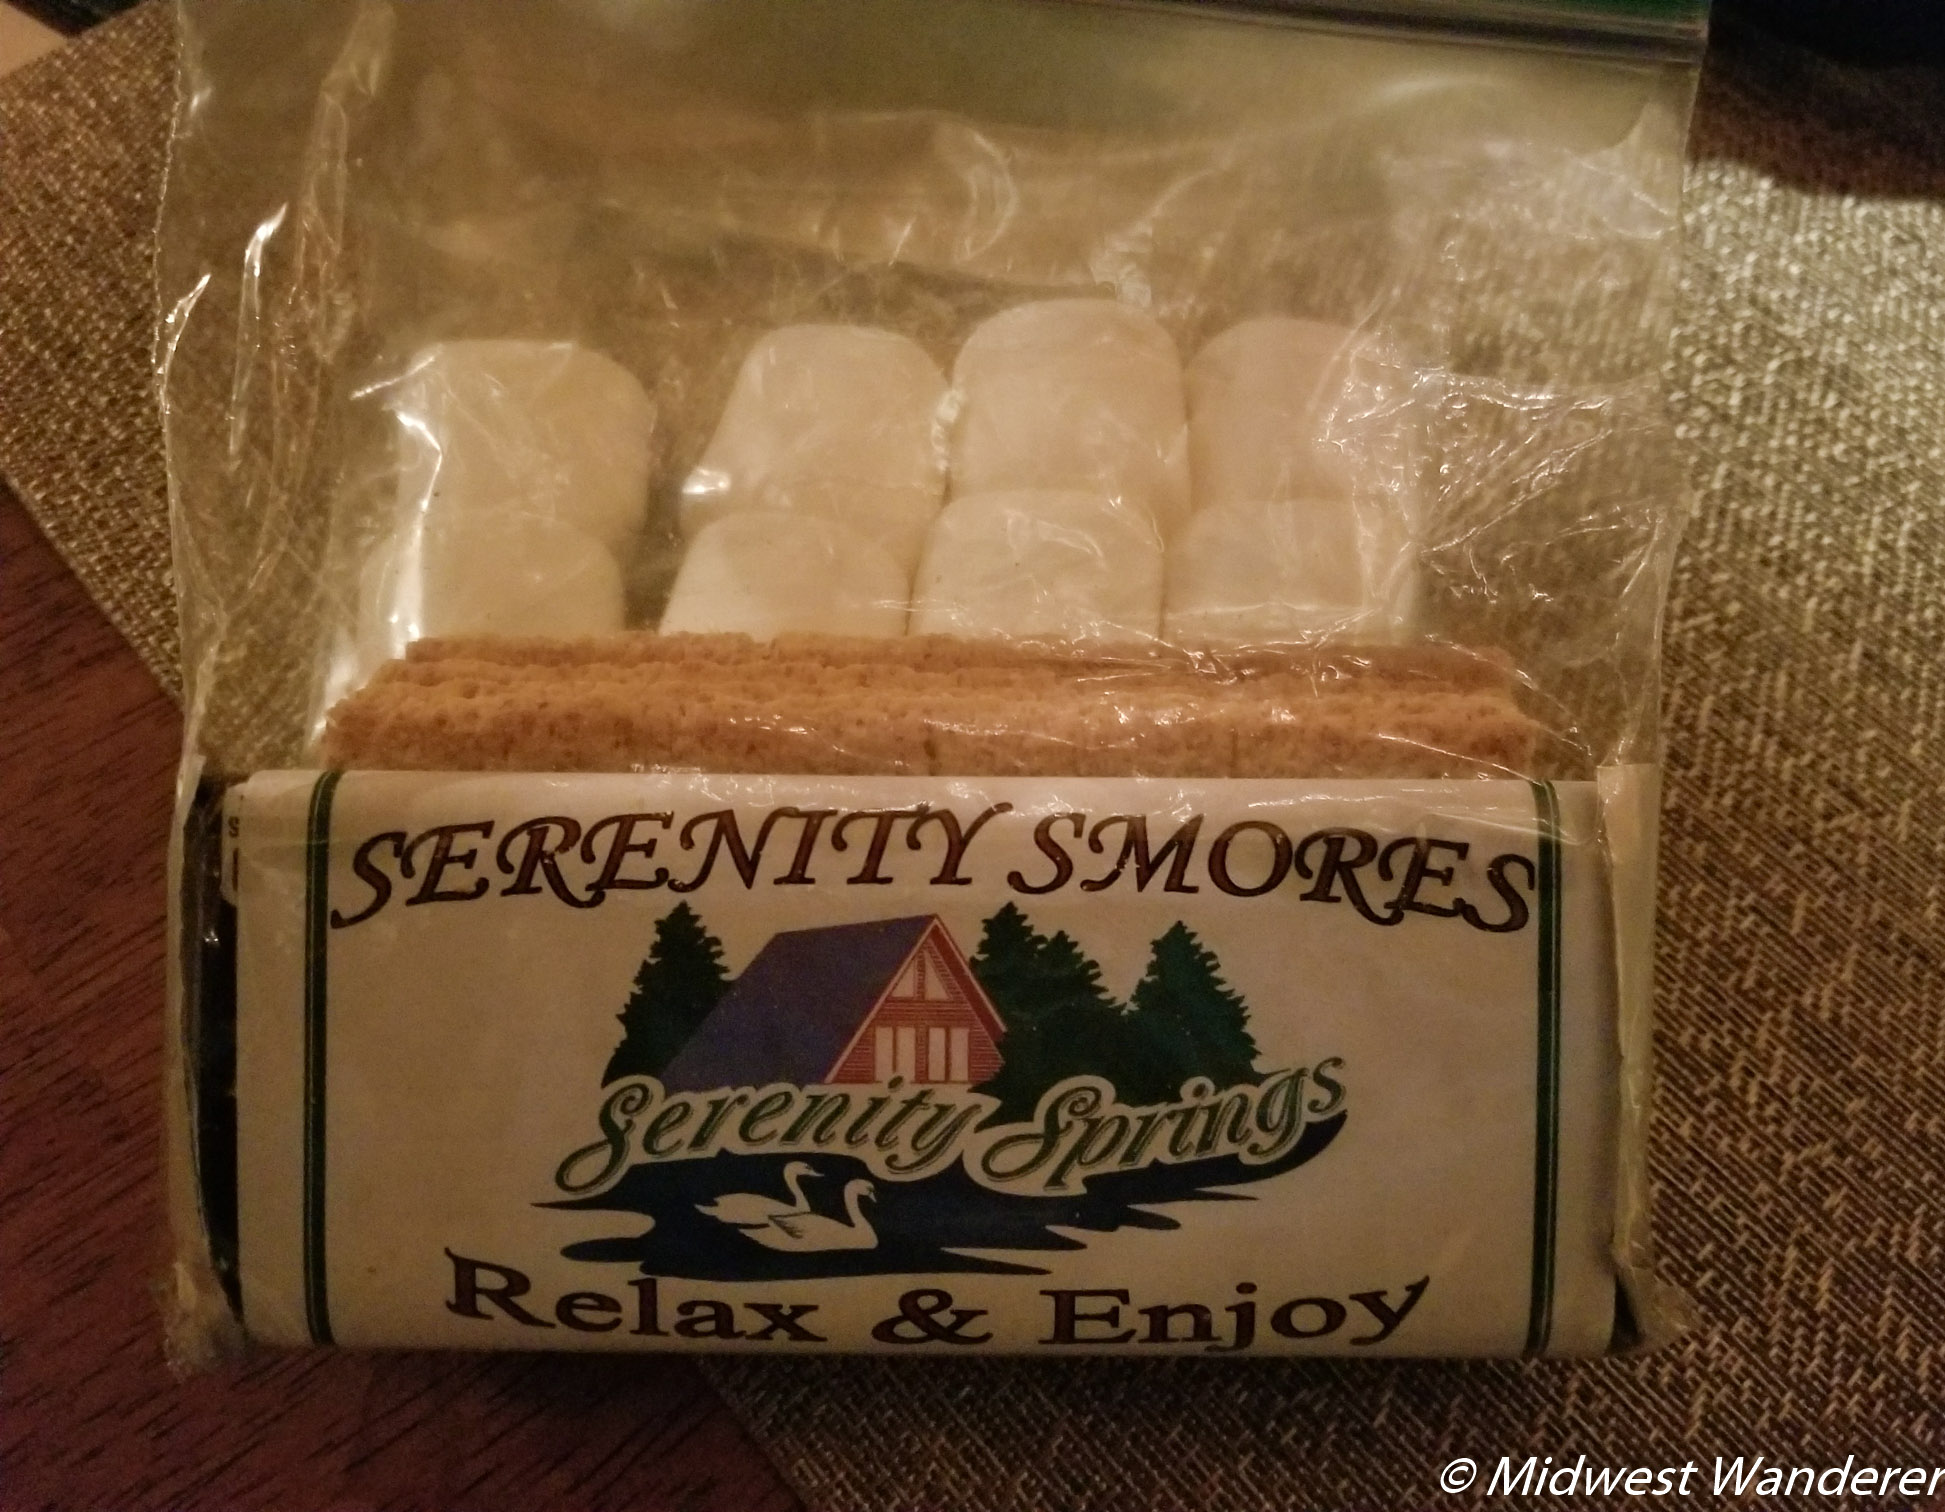 Serenity Springs - s'mores ingredients